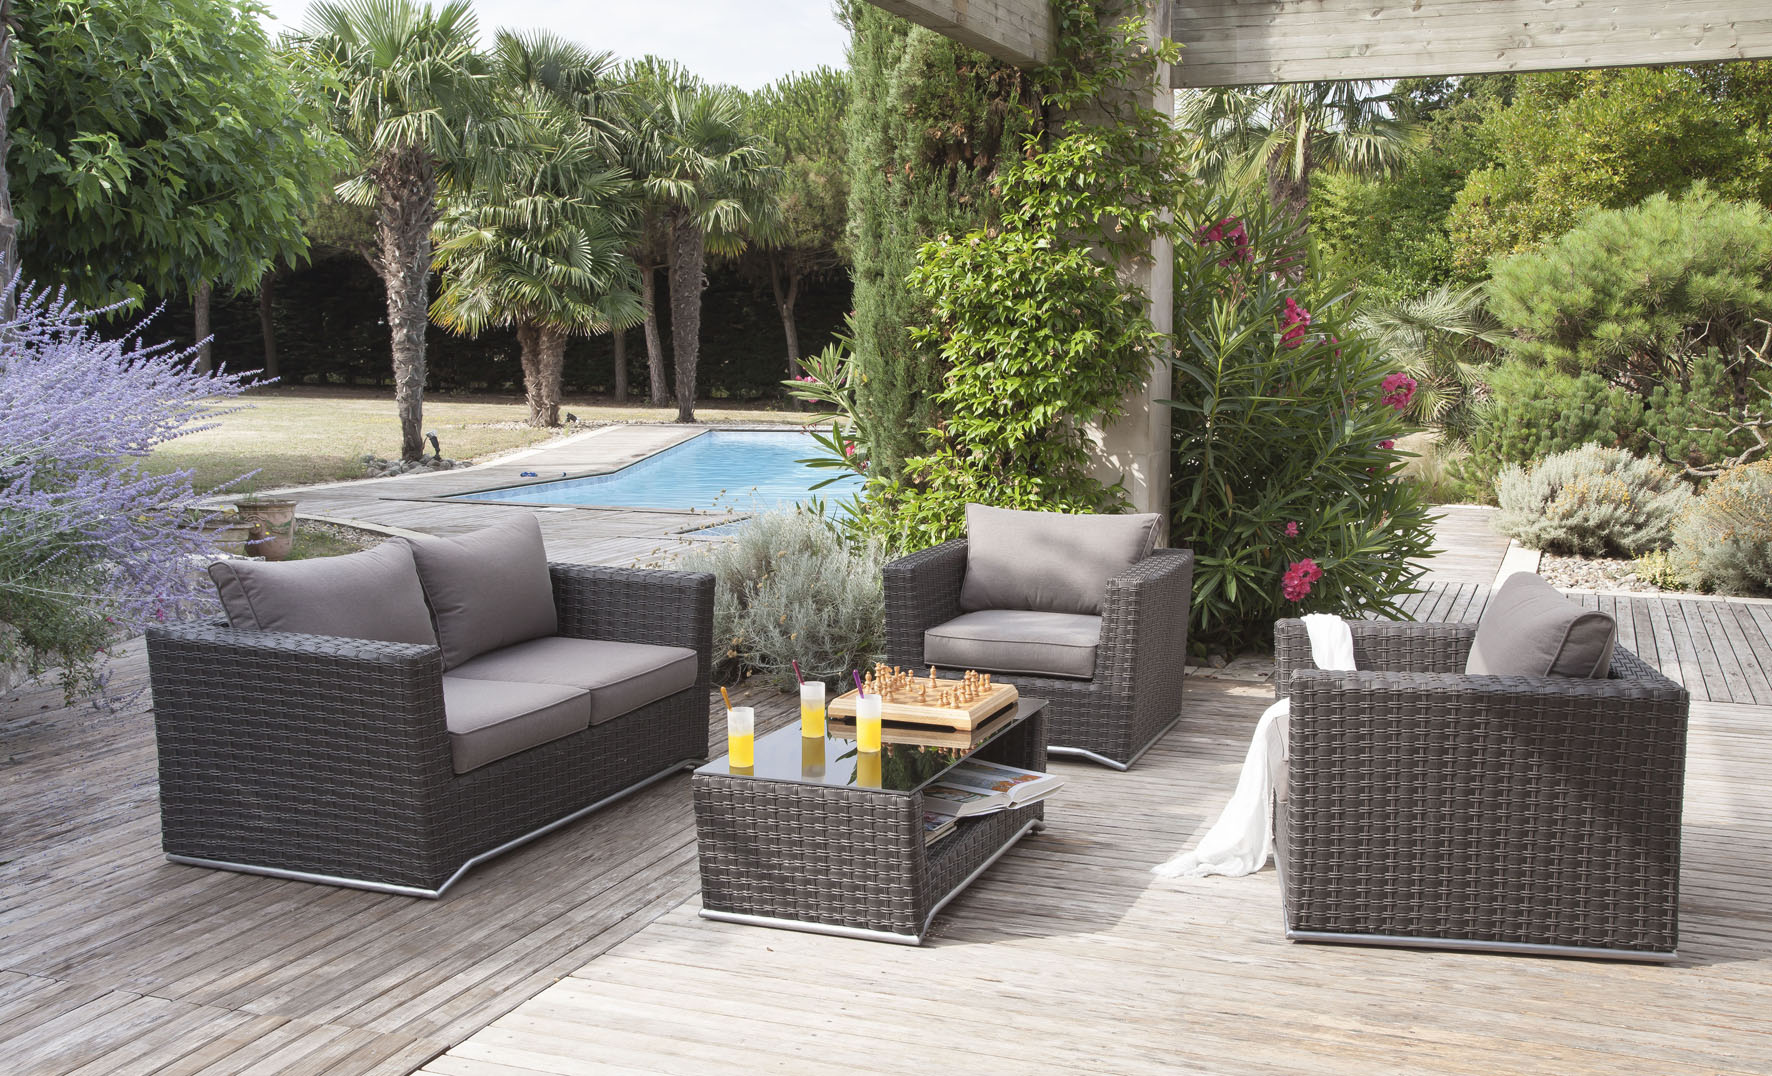 Outdoor la nouvelle collection proloisirs jacky la for Salon de jardin detente